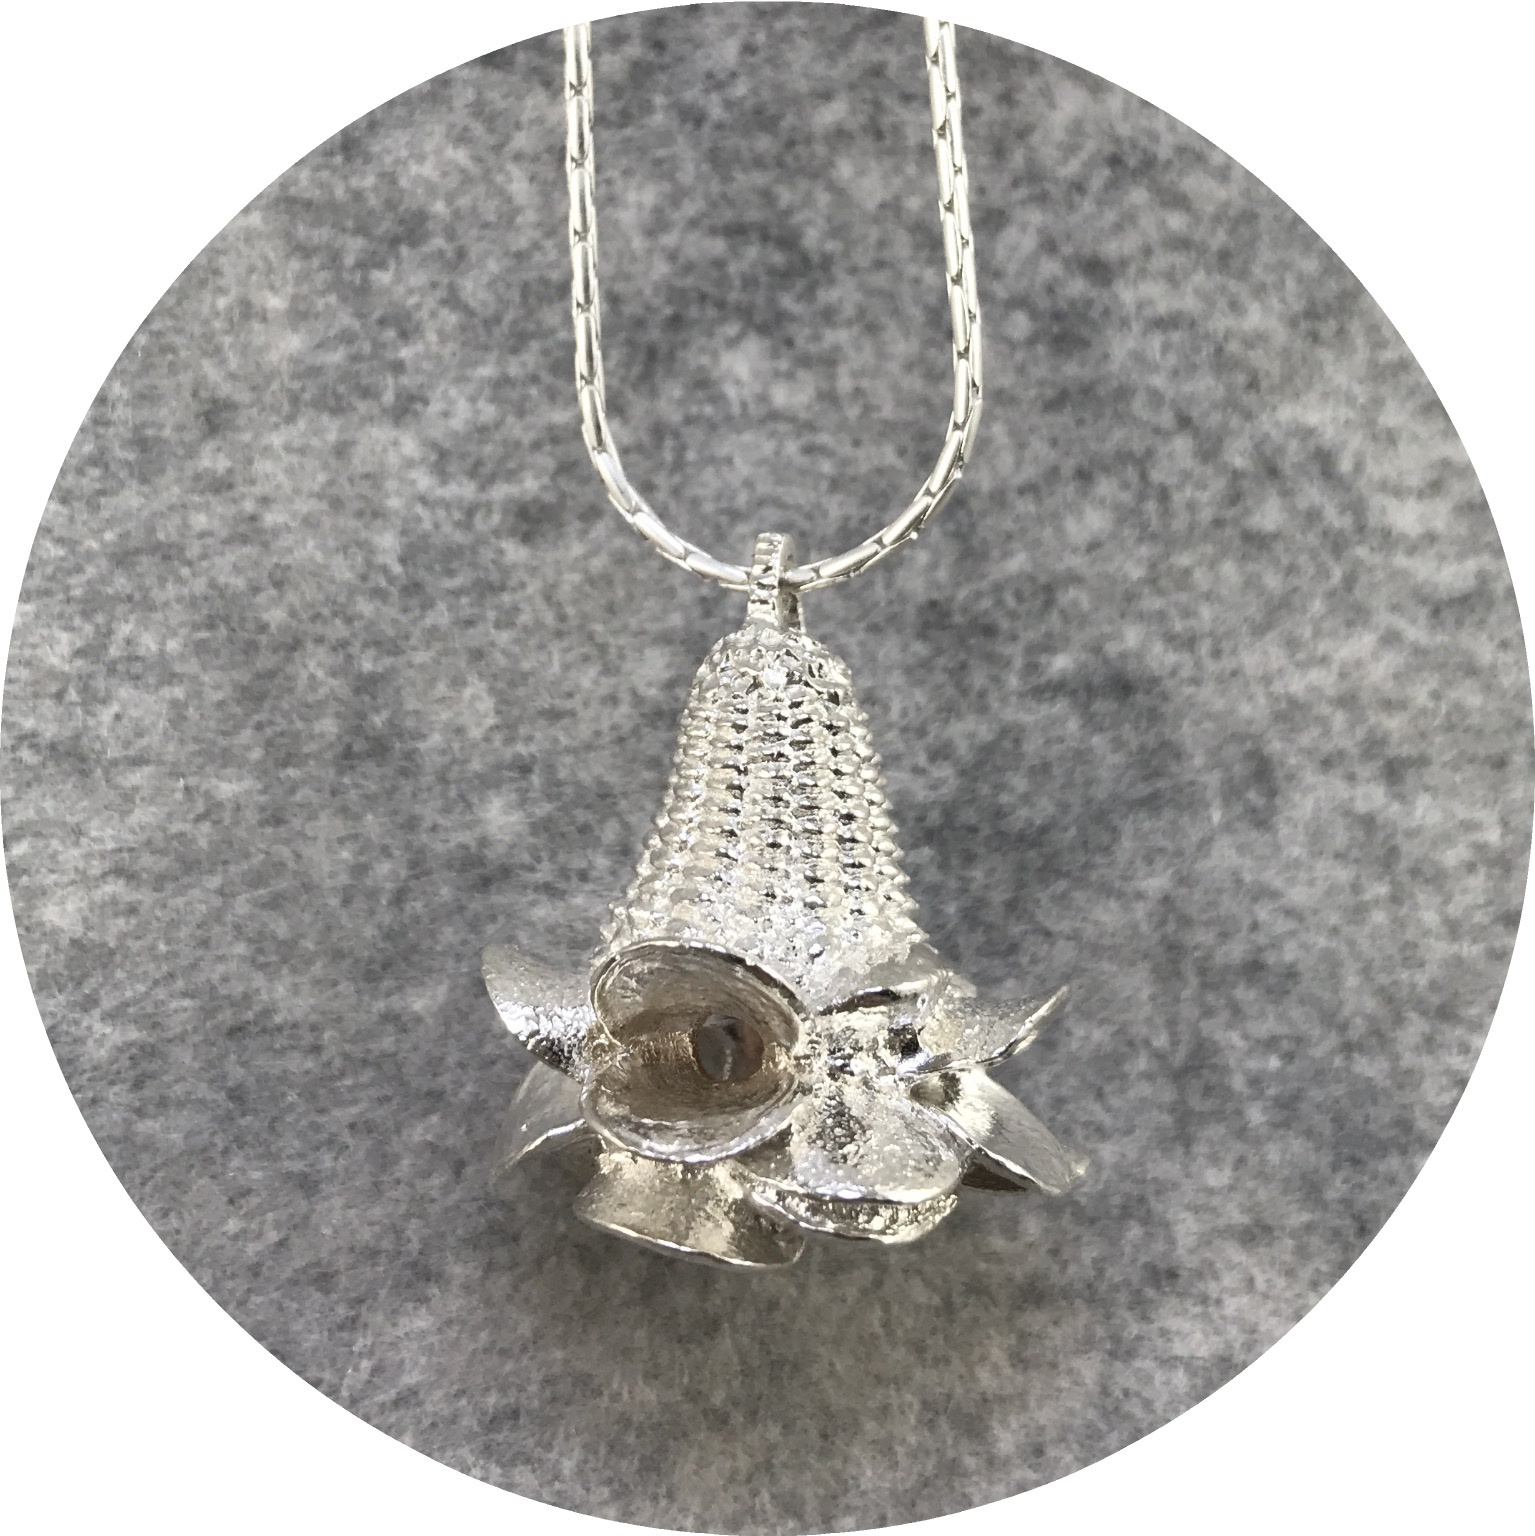 Abby Seymour- Banksia Necklace. Sterling Silver.